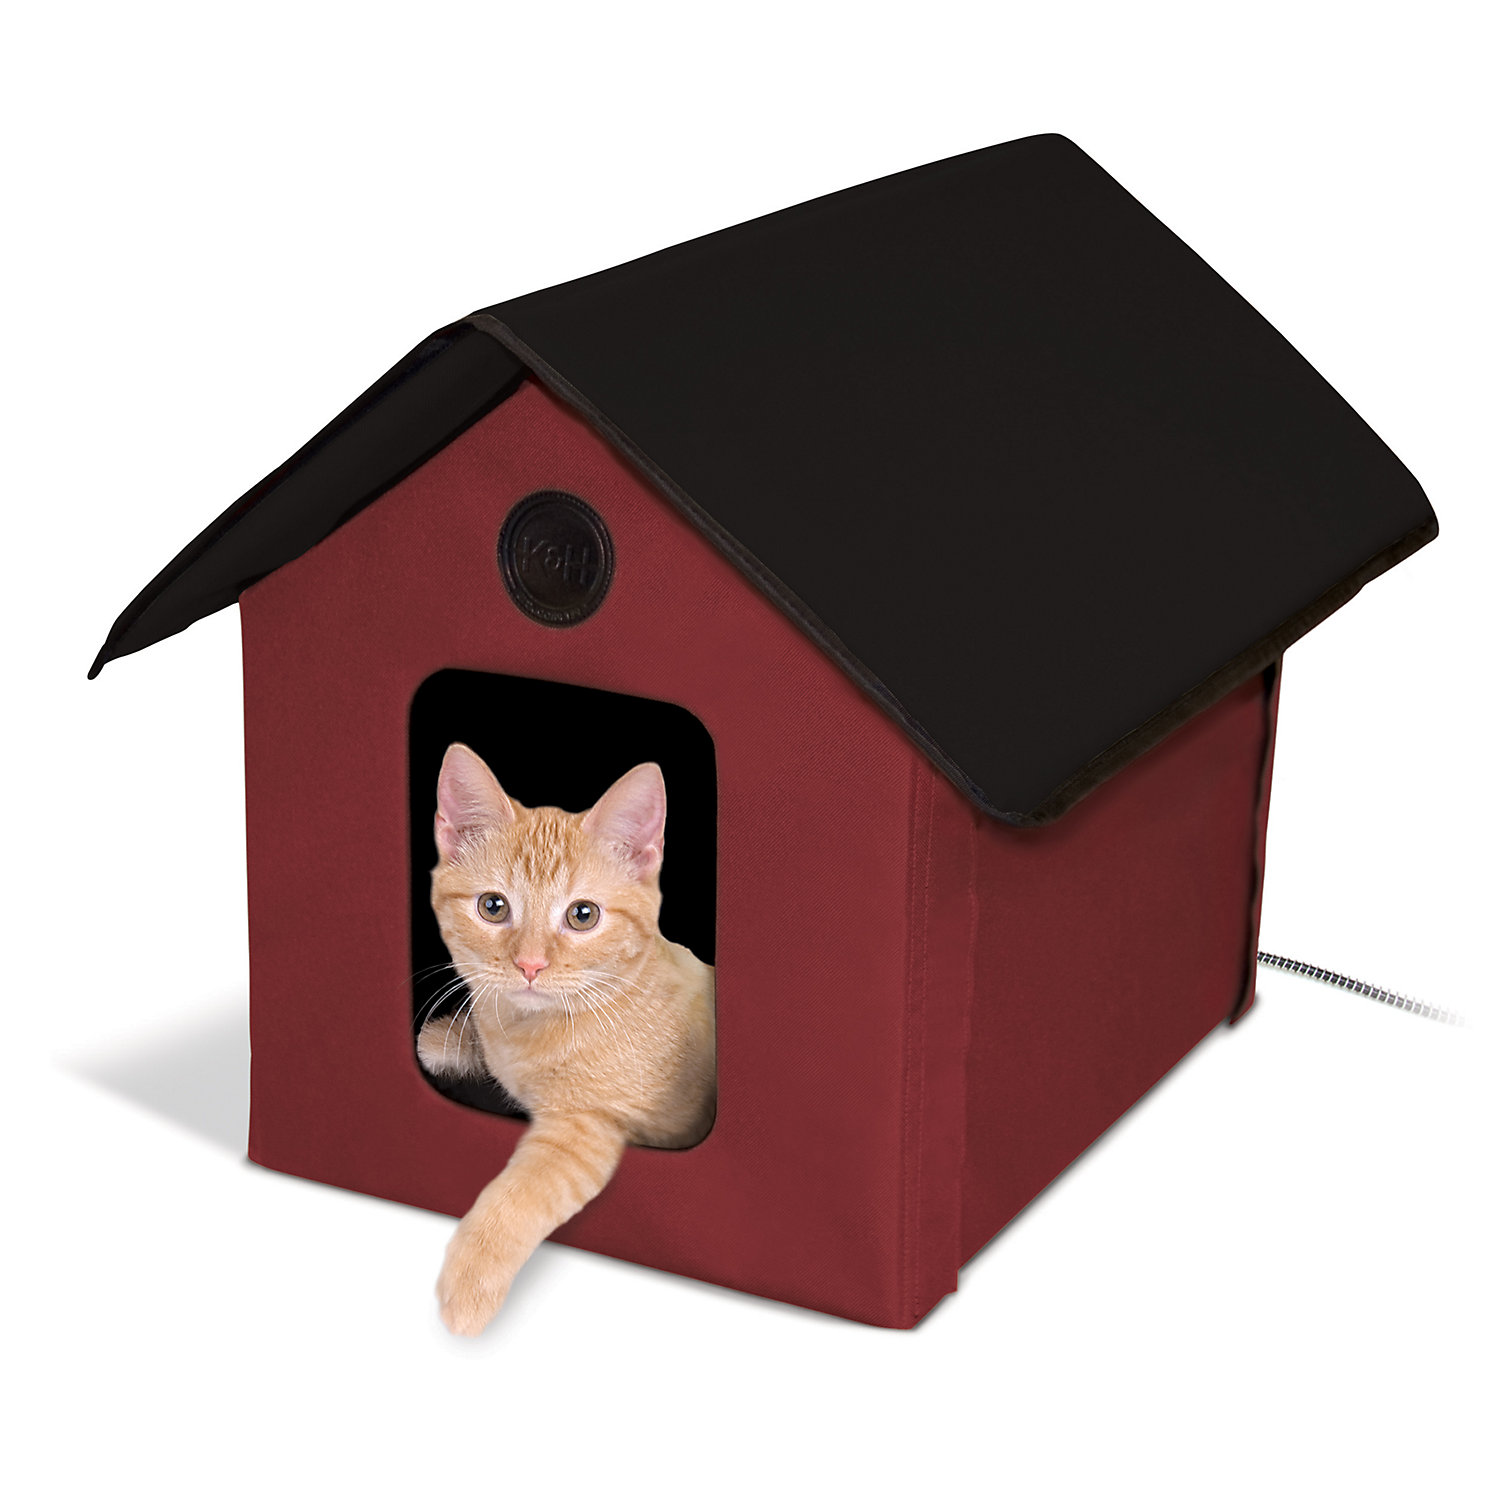 K H Red And Black Outdoor Heated Cat House Barn 18 L X 22 W Petco Cat Bed Heated Outdoor Cat House Outdoor Cat House